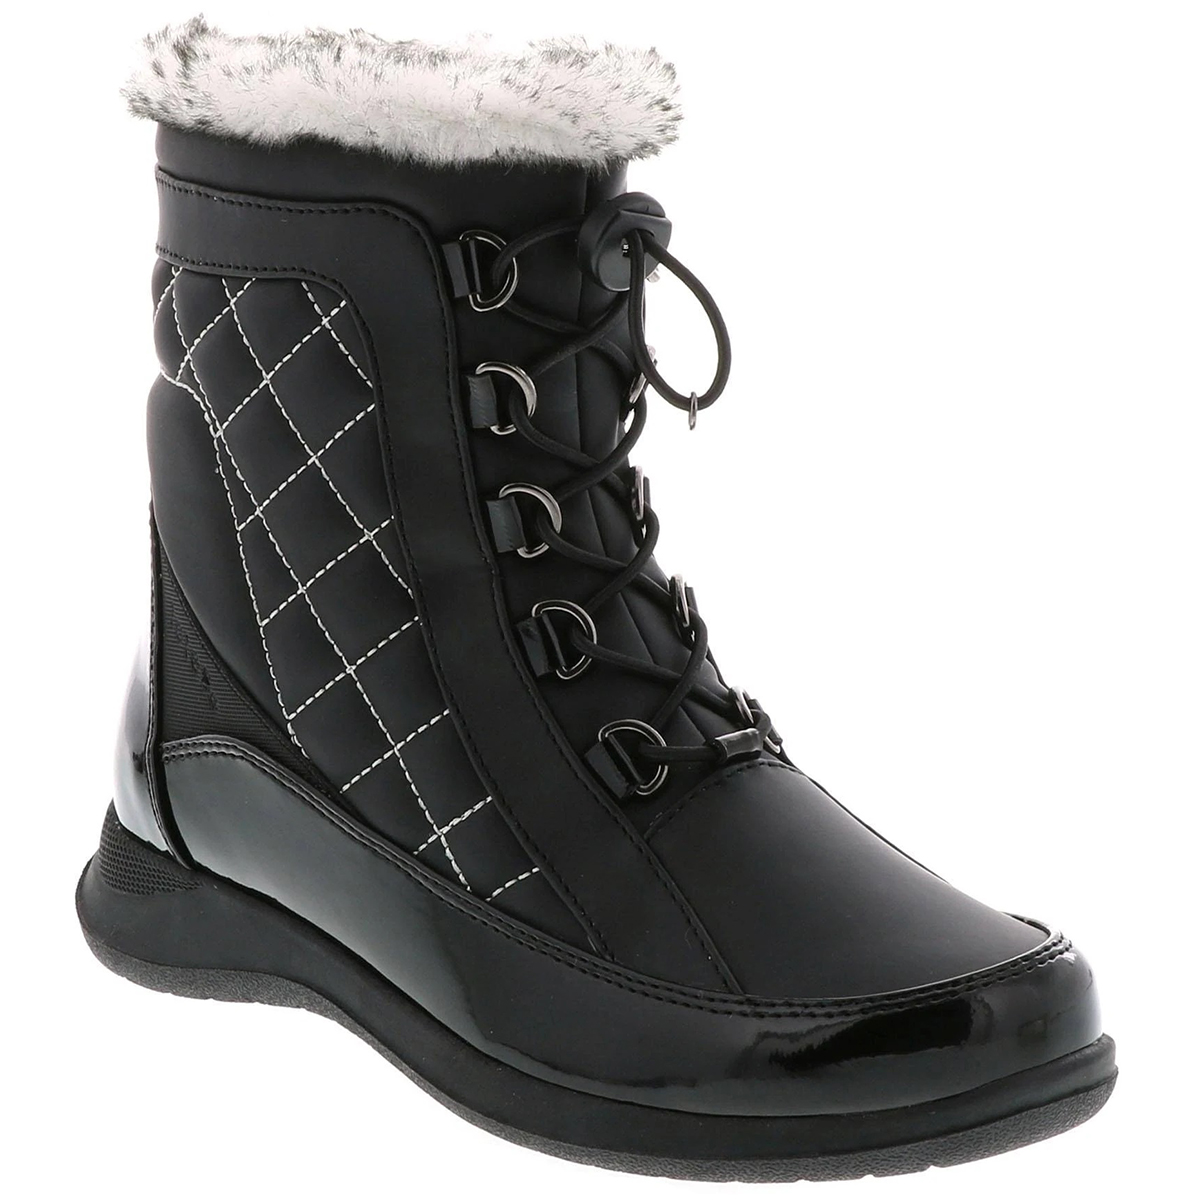 Totes Women's Lisa Winter Storm Boots - Black, 6